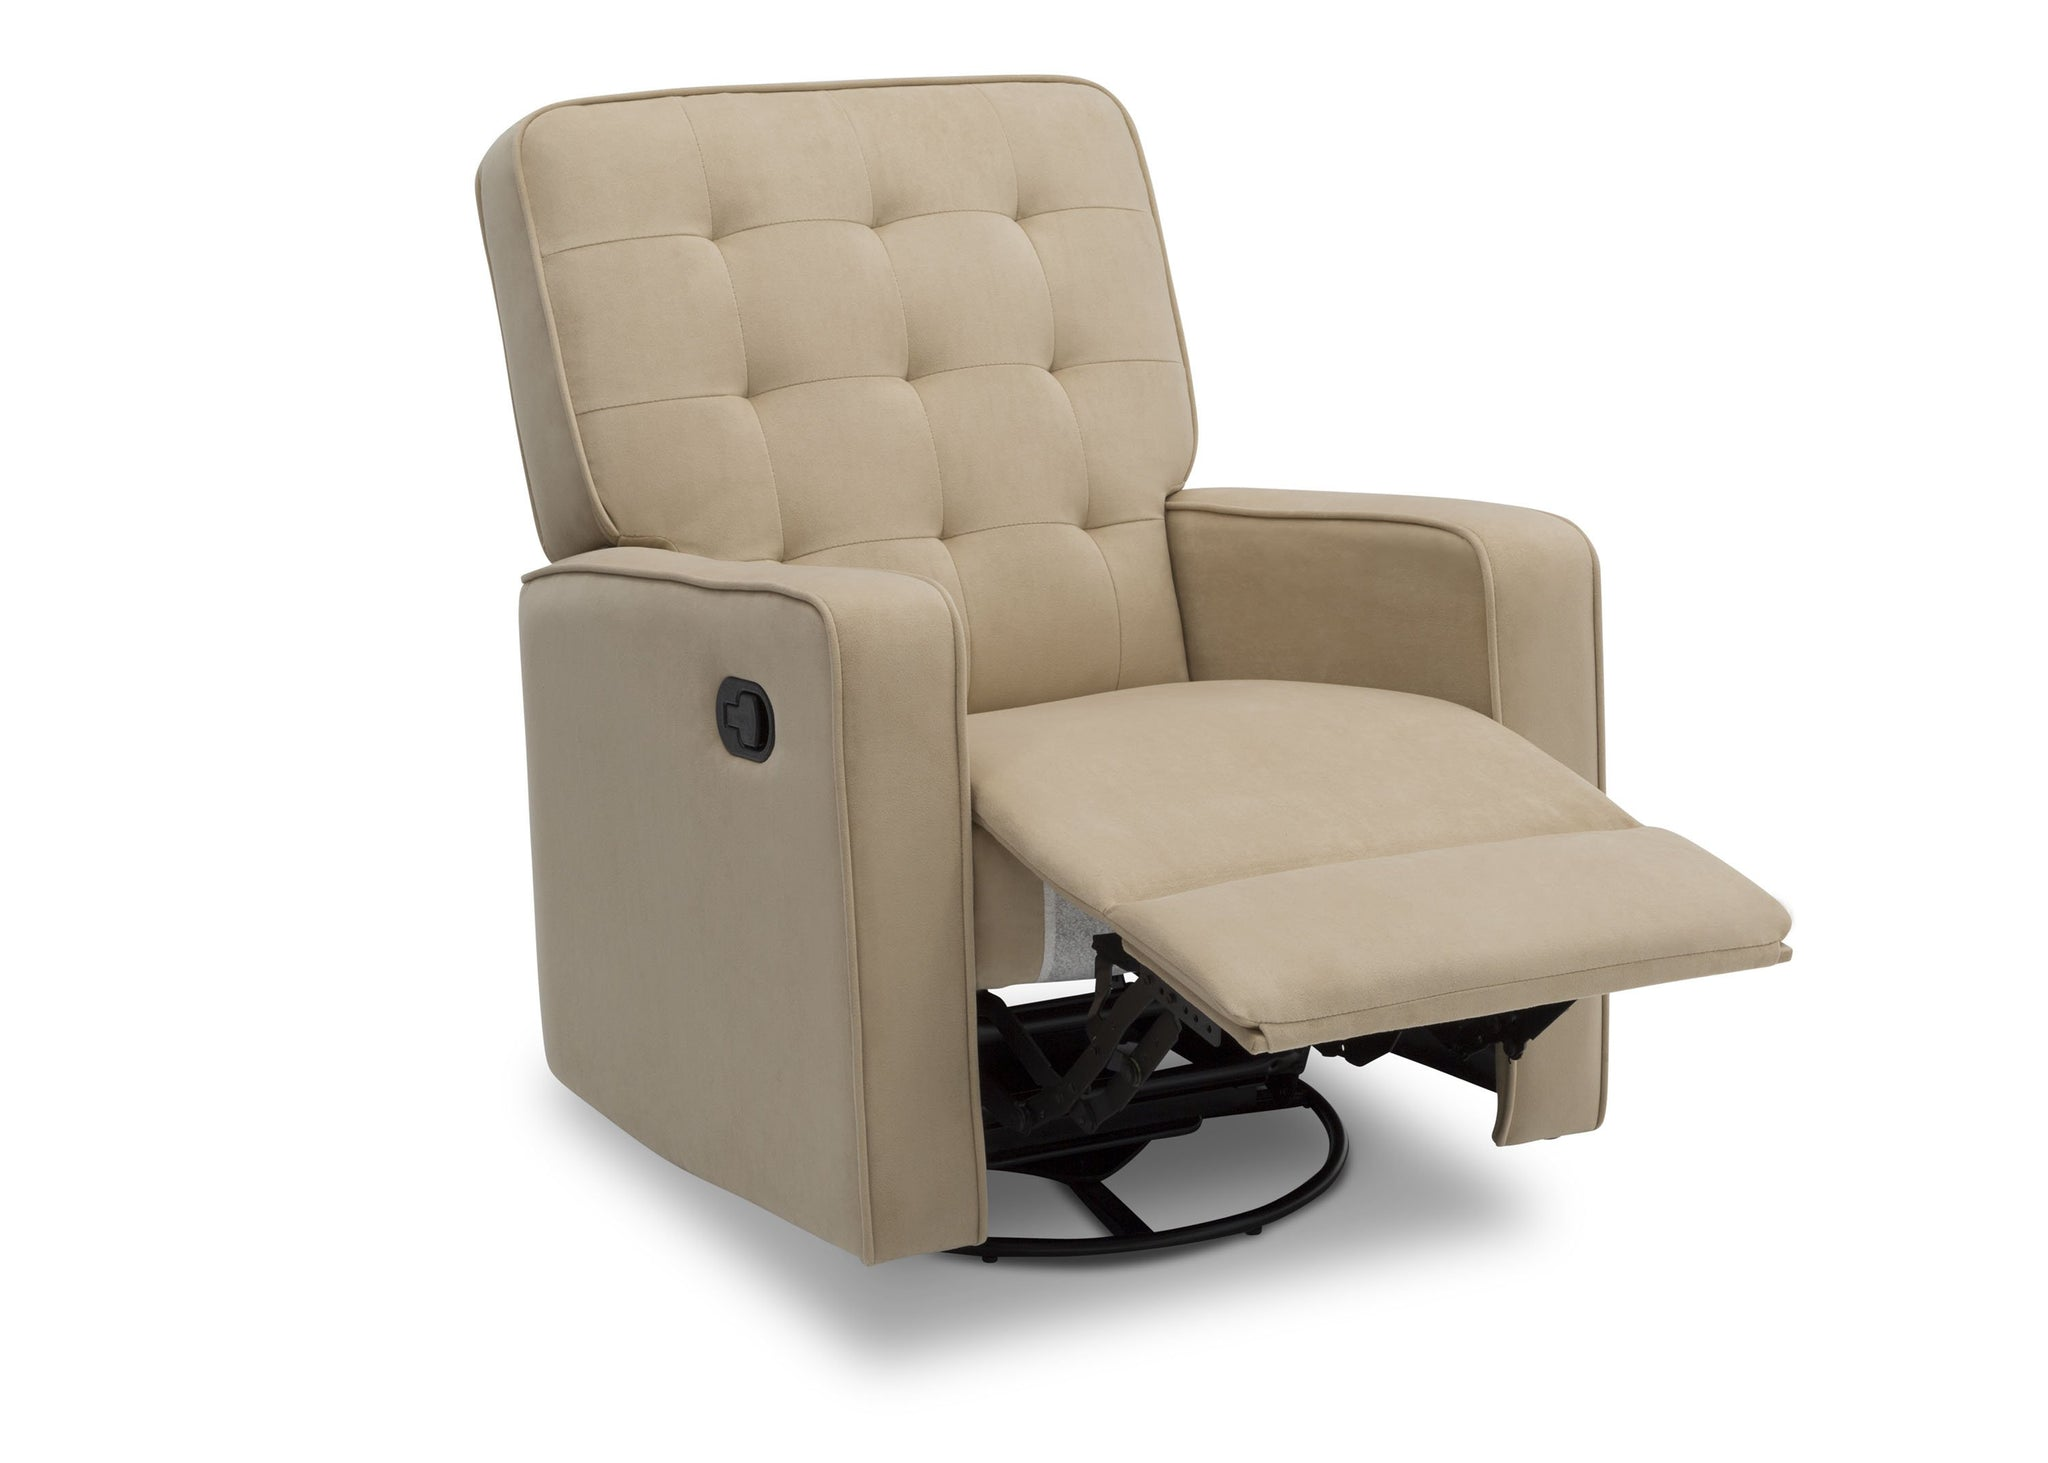 Delta Home Sisal (727) Grant Glider Swivel Recliner, Right Reclined Silo View